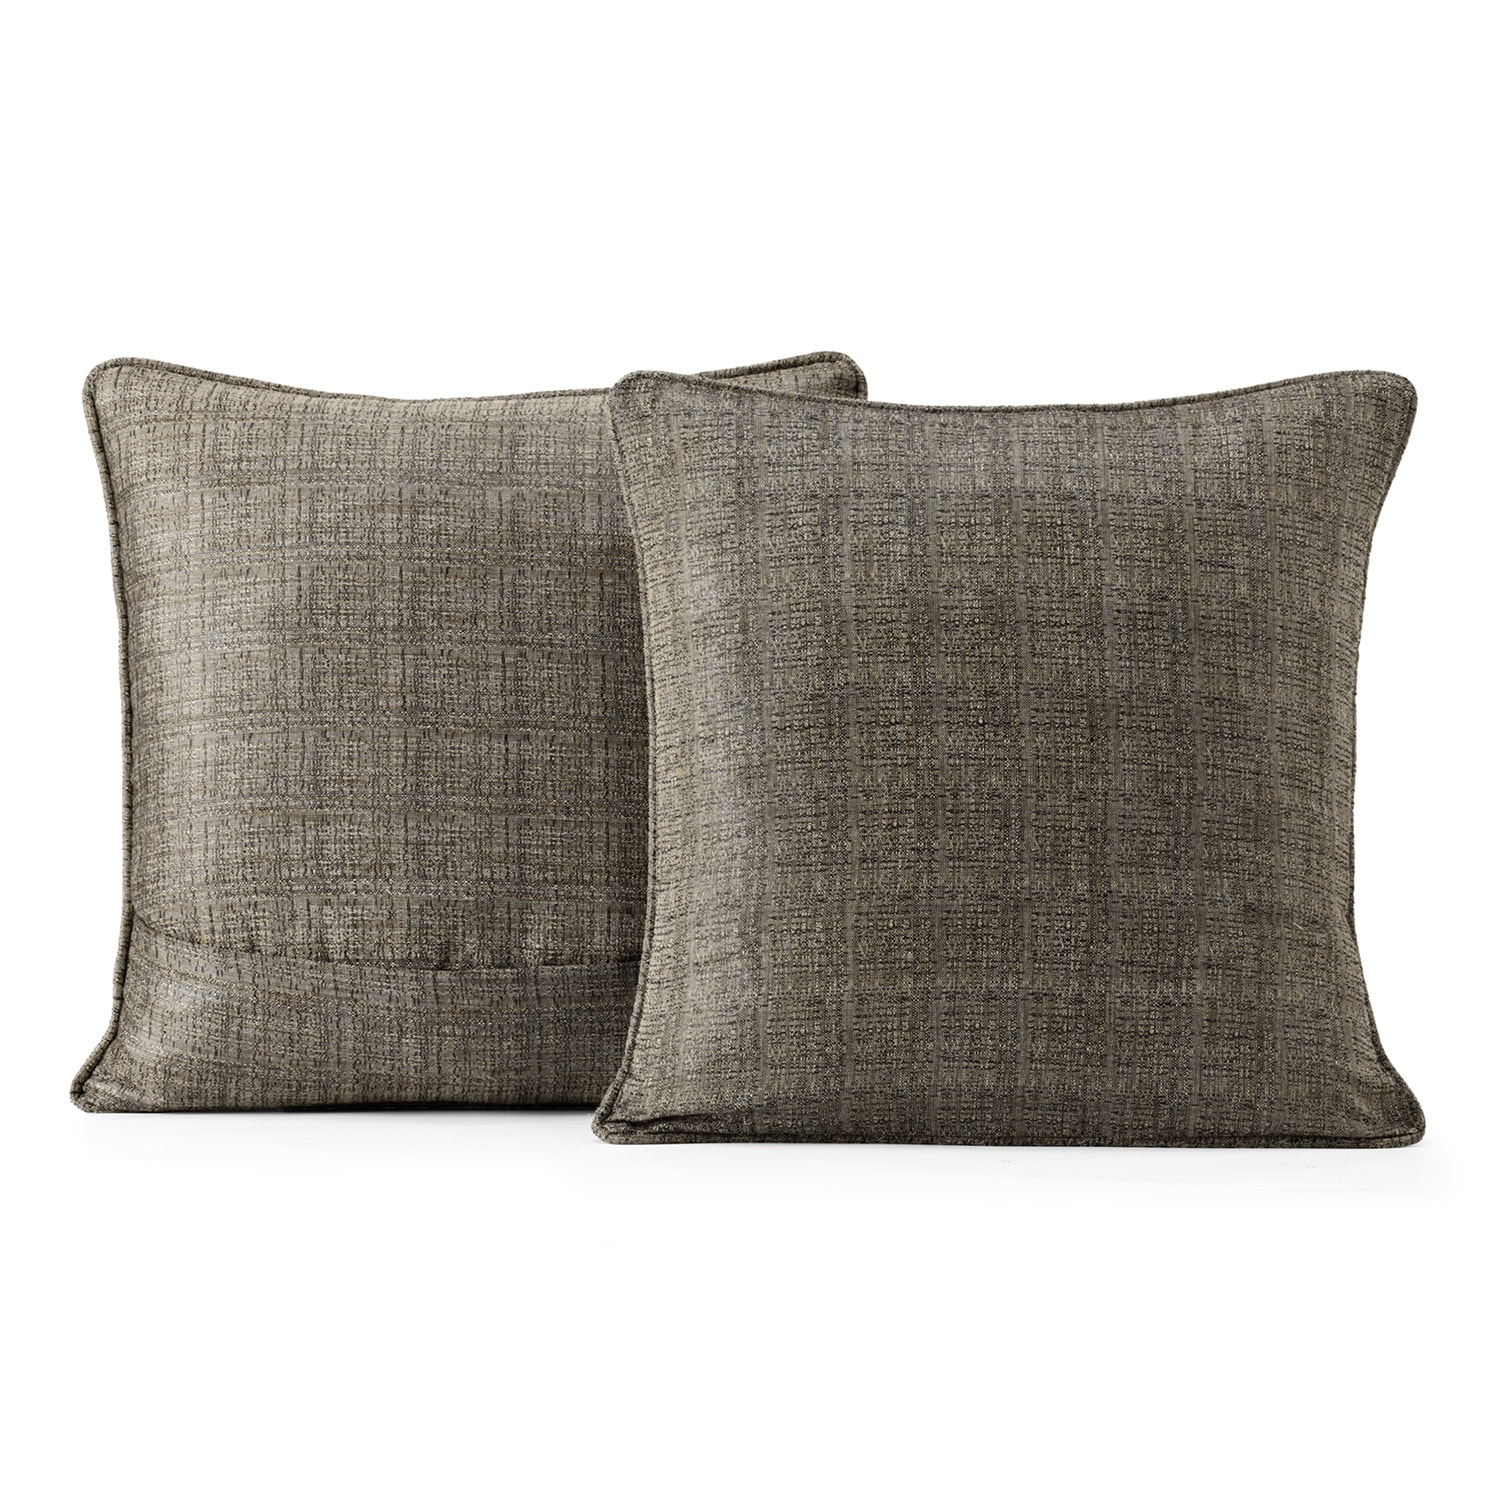 Nighthawk Grey Yarn Dyed Designer Faux Raw Textured Silk Cushion Cover - Pair